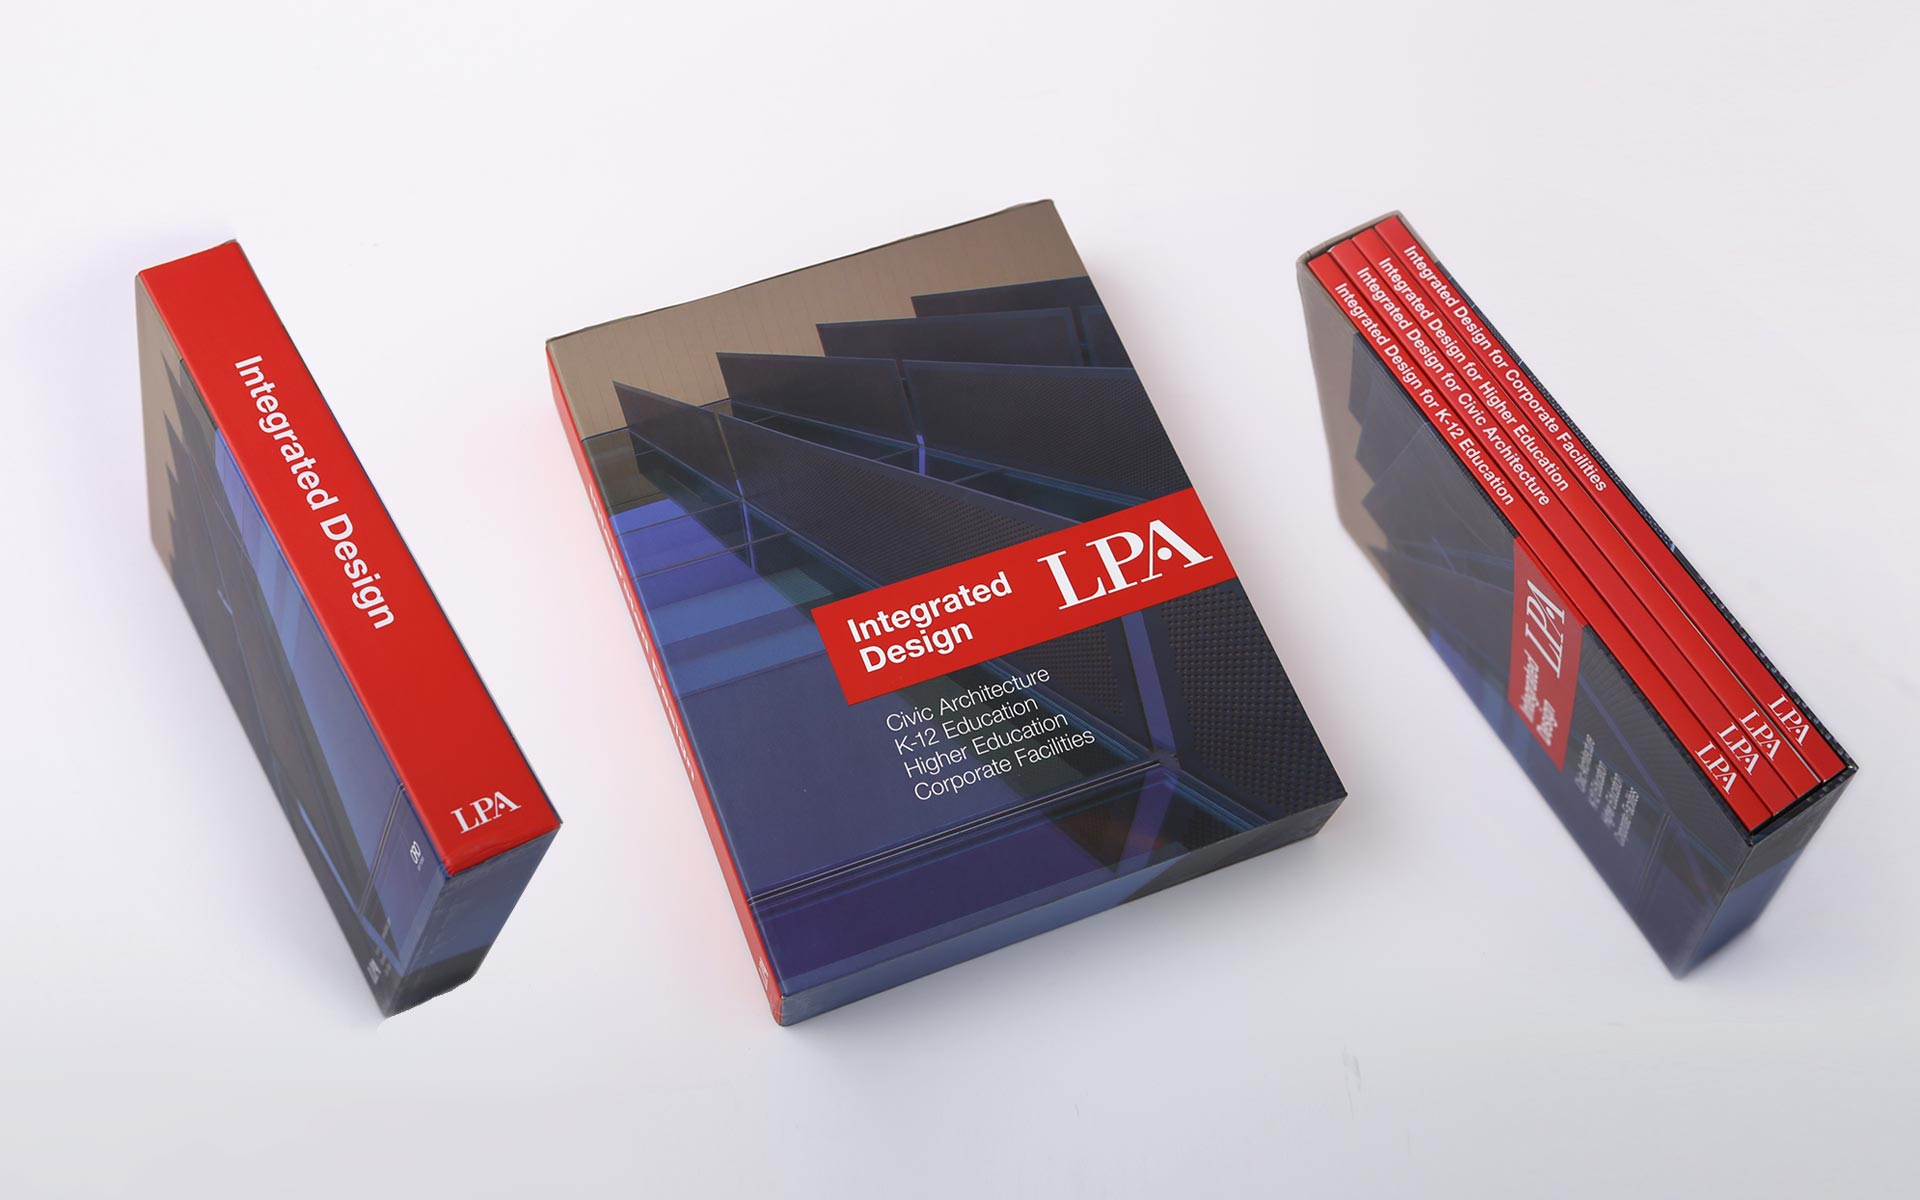 LPA: Integrated design book series, Civic Architecture, K1-2 Education, Higher Education, Sport facilities